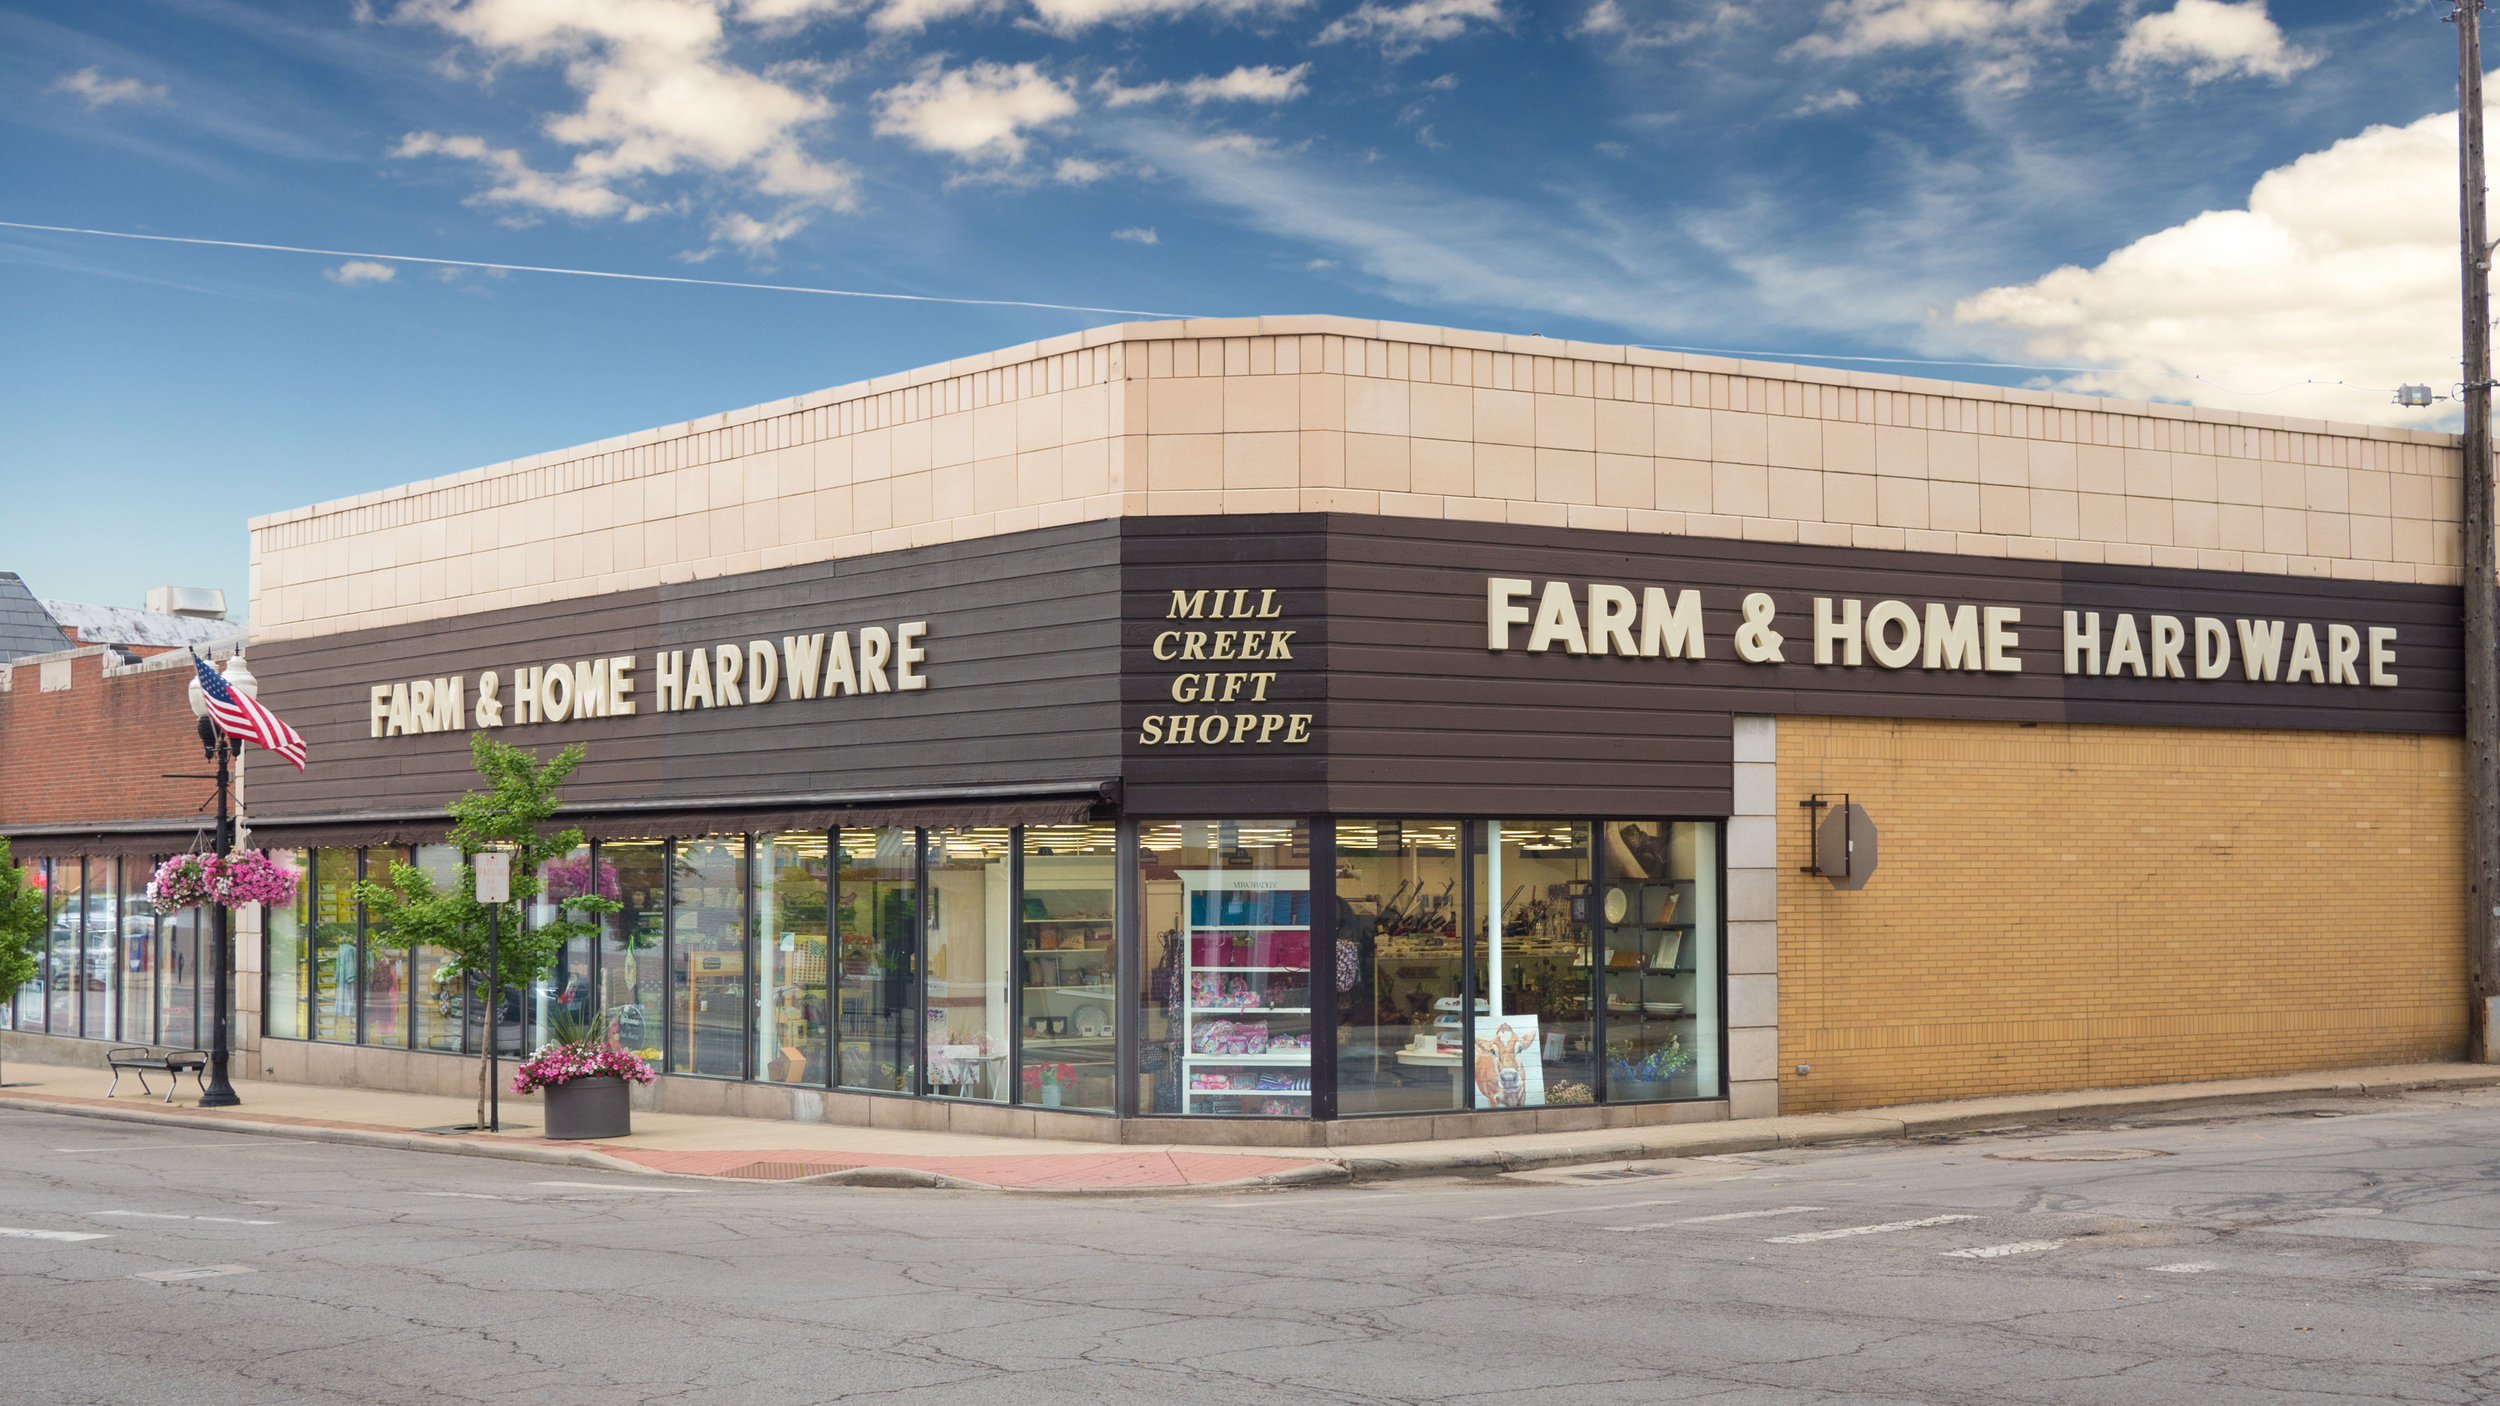 Farm & Home Hardware store location in Ashland, Ohio